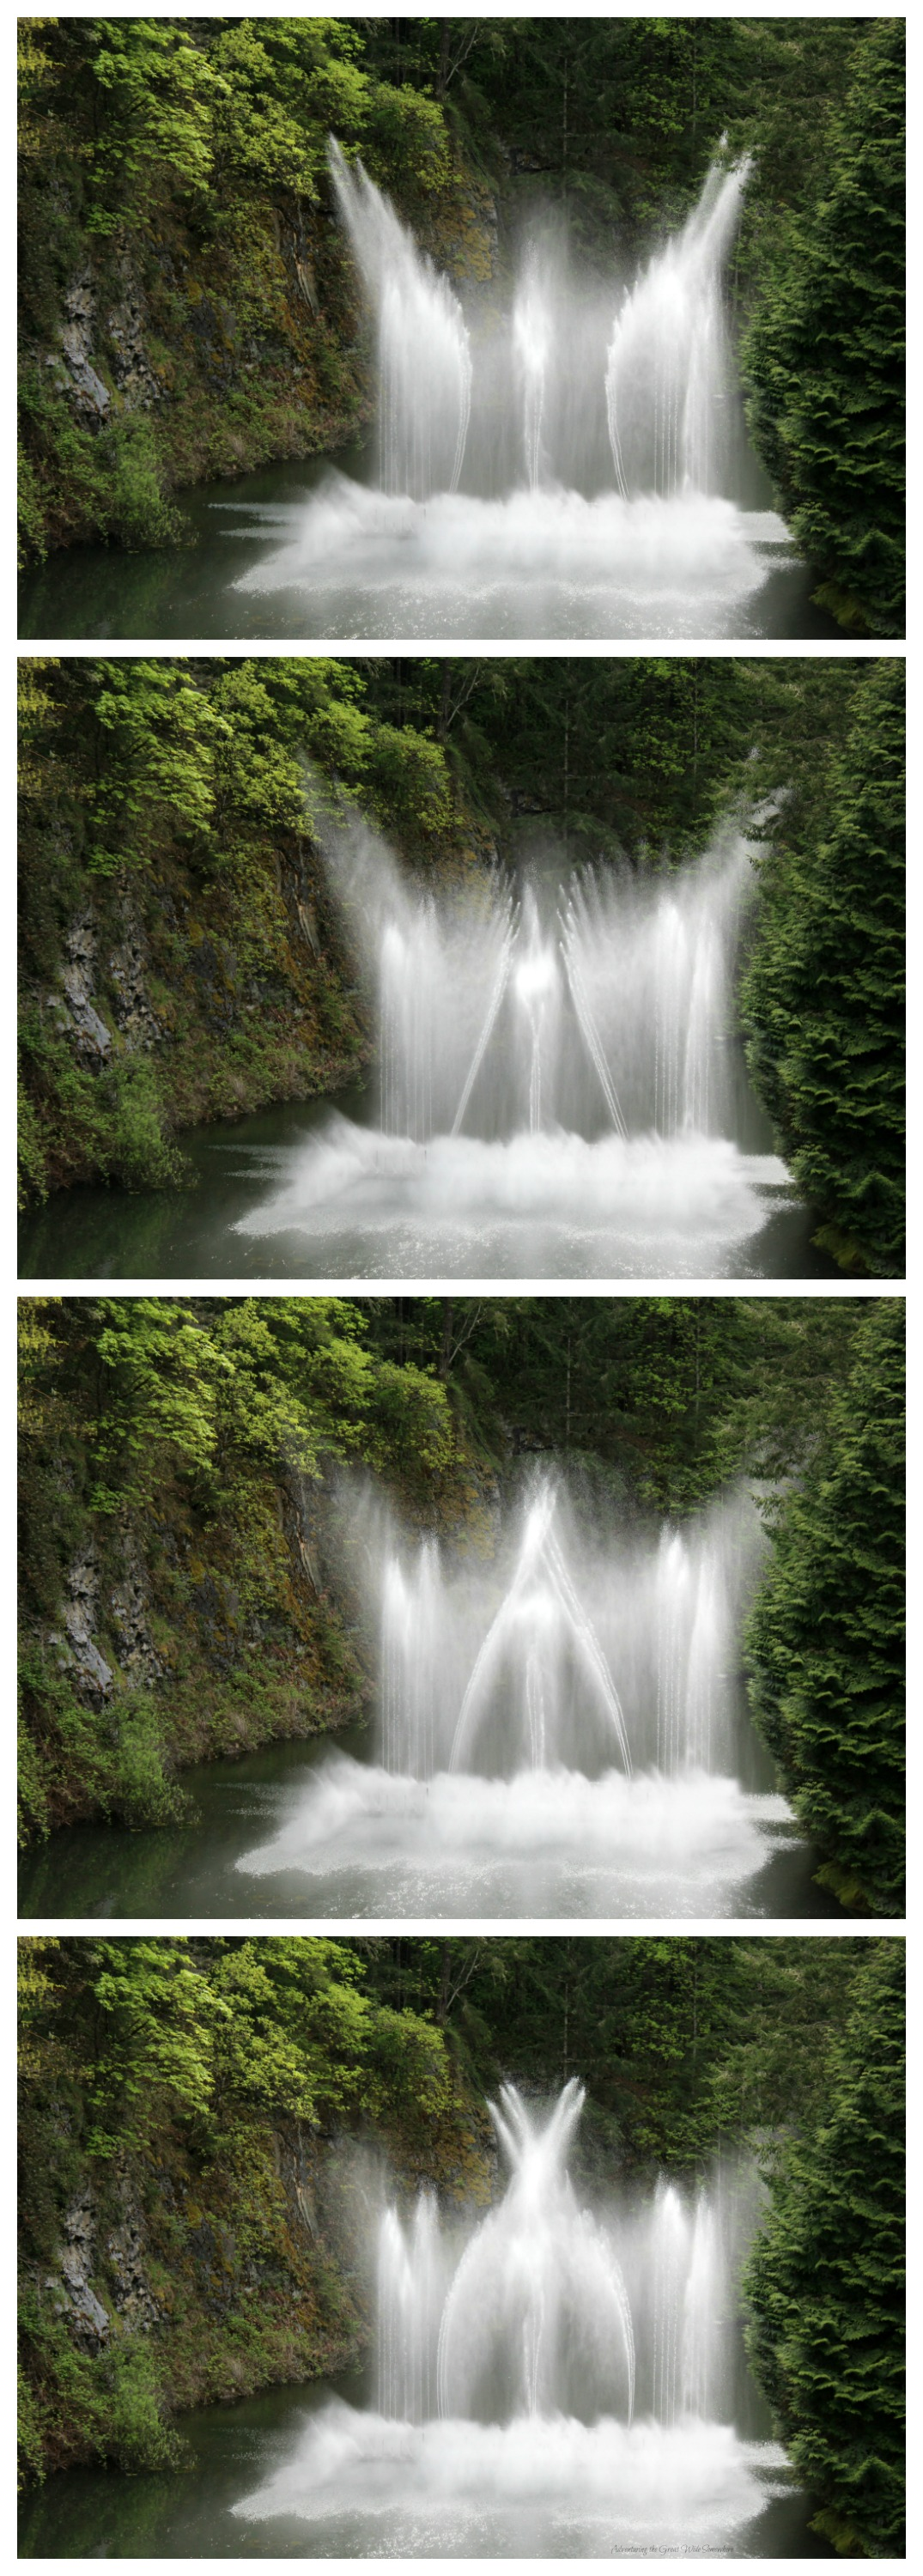 Dancing Fountains at Canada's Butchart Gardens